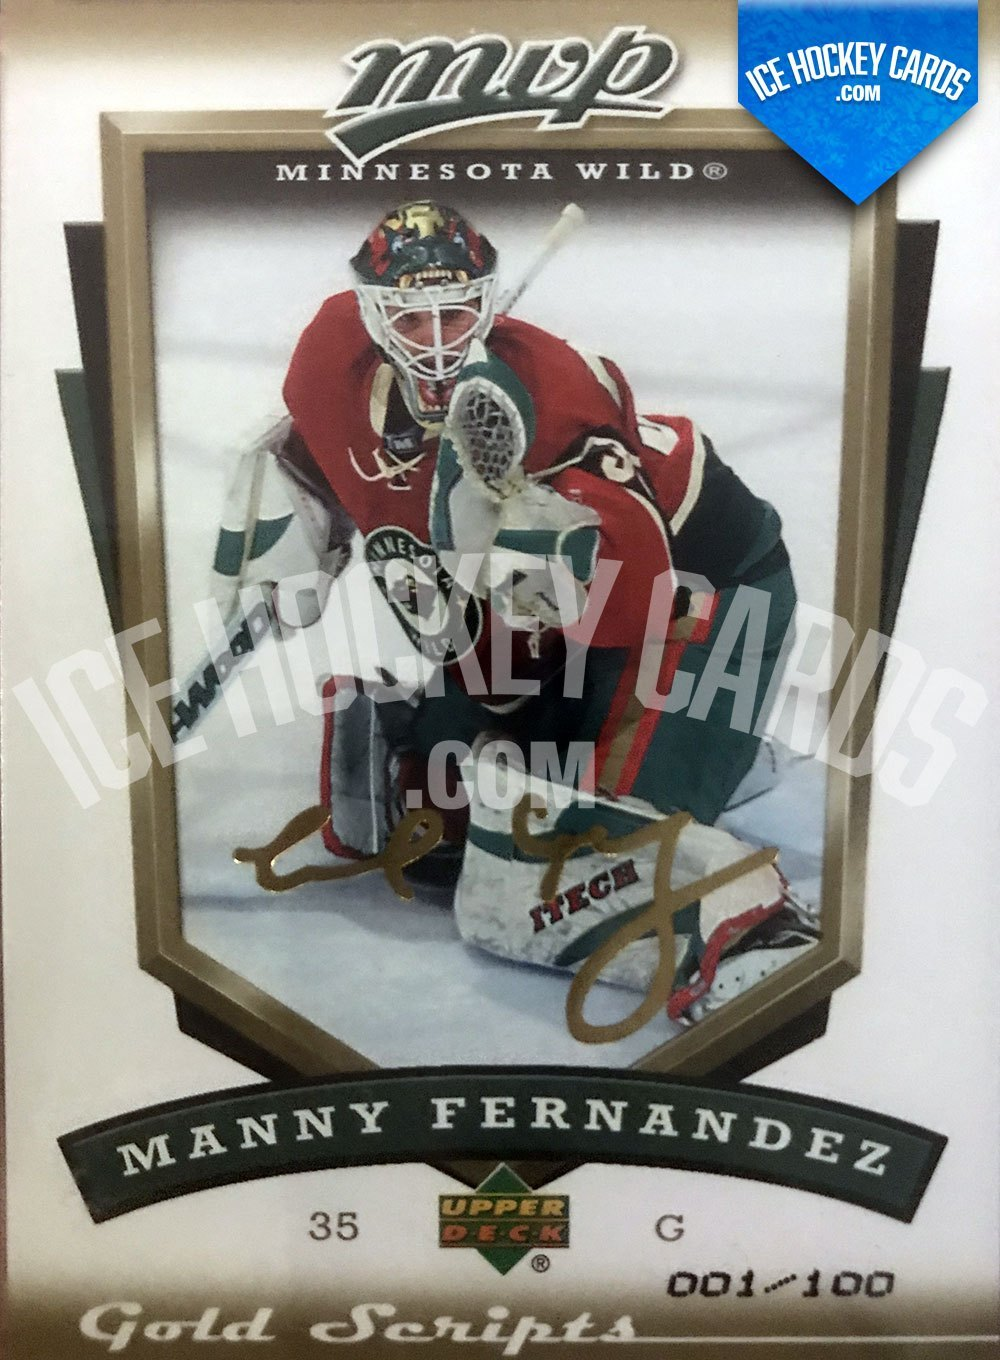 Upper Deck - MVP 06-07 - Manny Fernandez Gold Scripts Card 1 of 100 FIRST OF SET